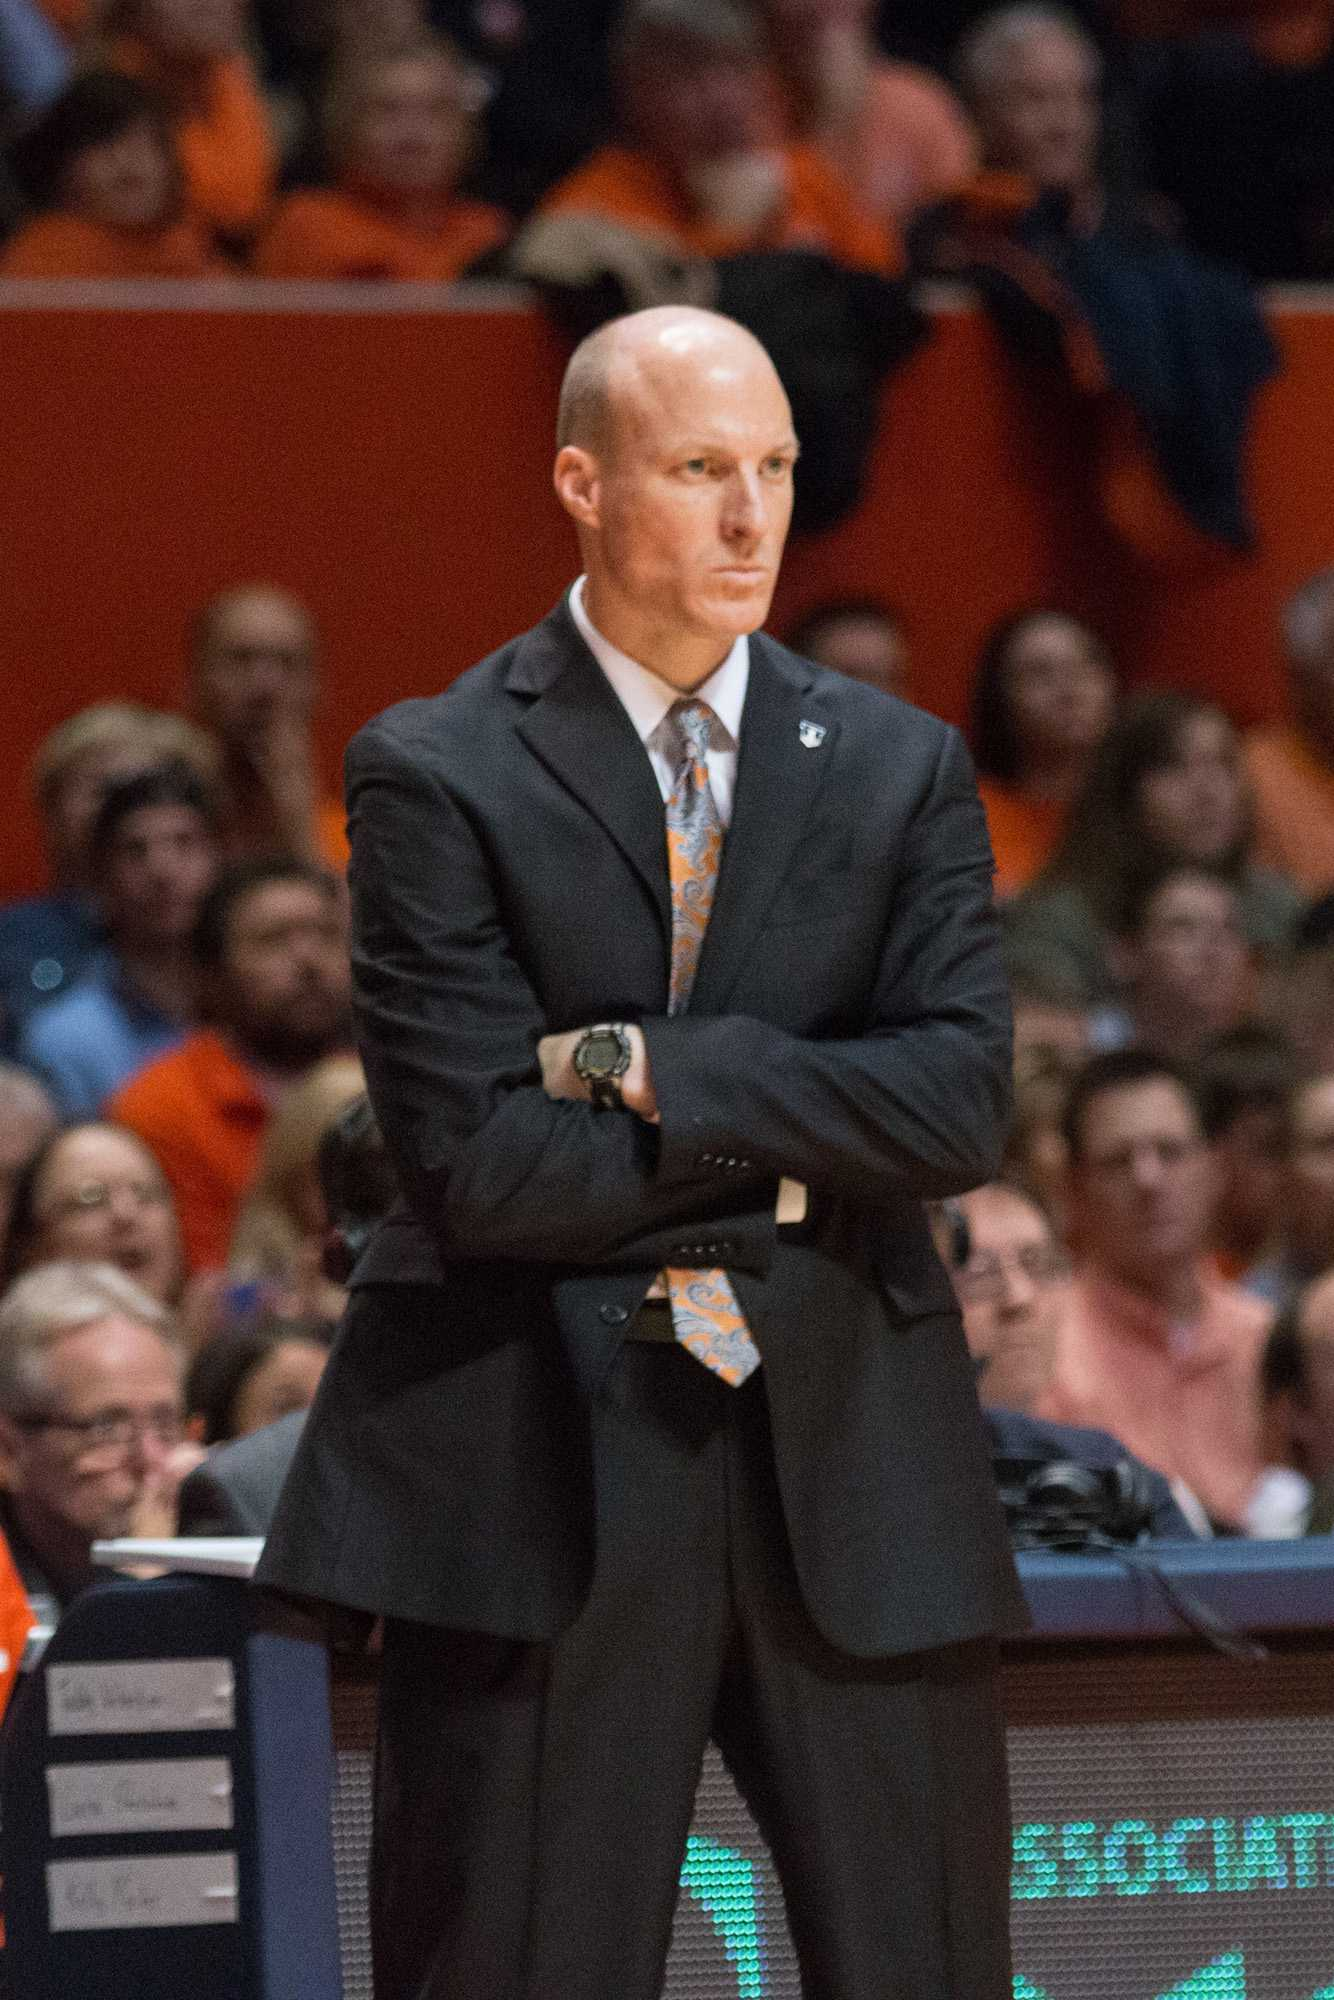 We%E2%80%99ve+seen+Illini+basketball+teams+collapse+down+the+stretch+before%2C+and+a+free-fall+from+this+Illini+team+could+have+consequences+beyond+this+injury-plagued+season.